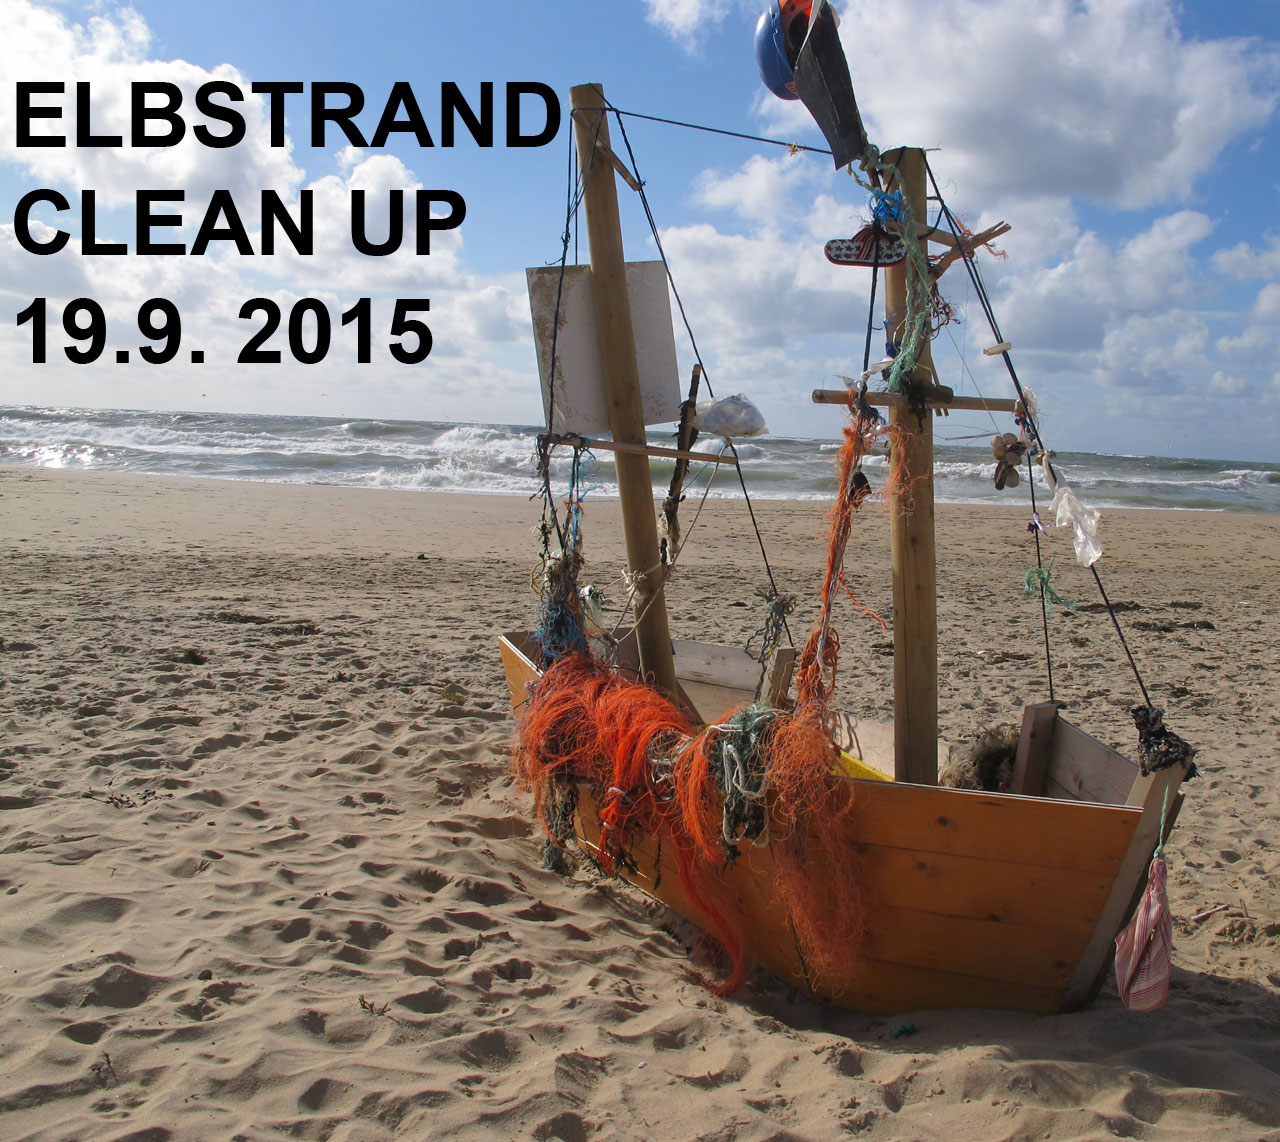 Elbstrand Clean Up 19.9.2015